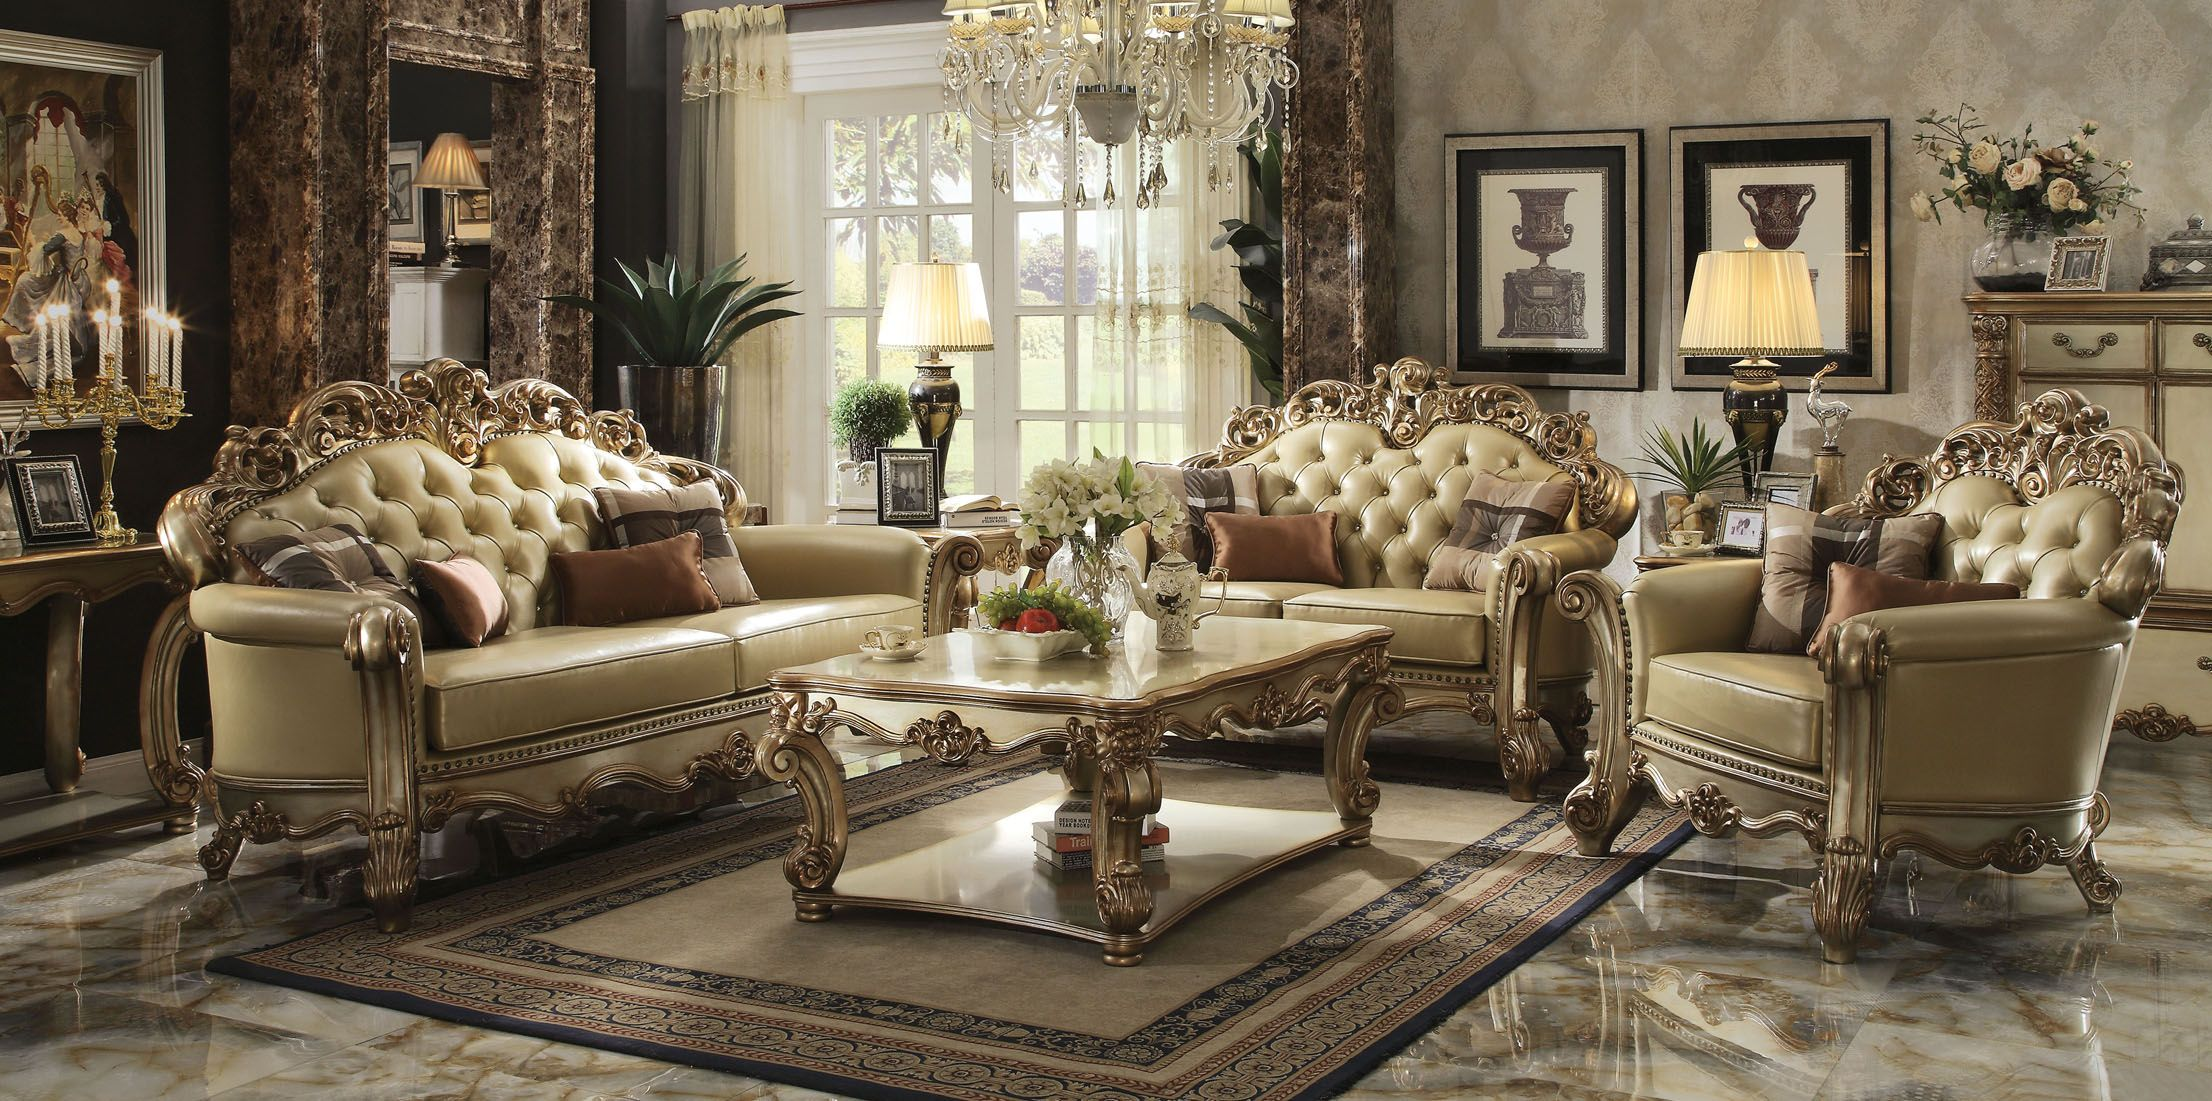 acme furniture bedroom sets. Vendome Bonded Leather Sofa Collection  Acme Furniture Bedroom Sets